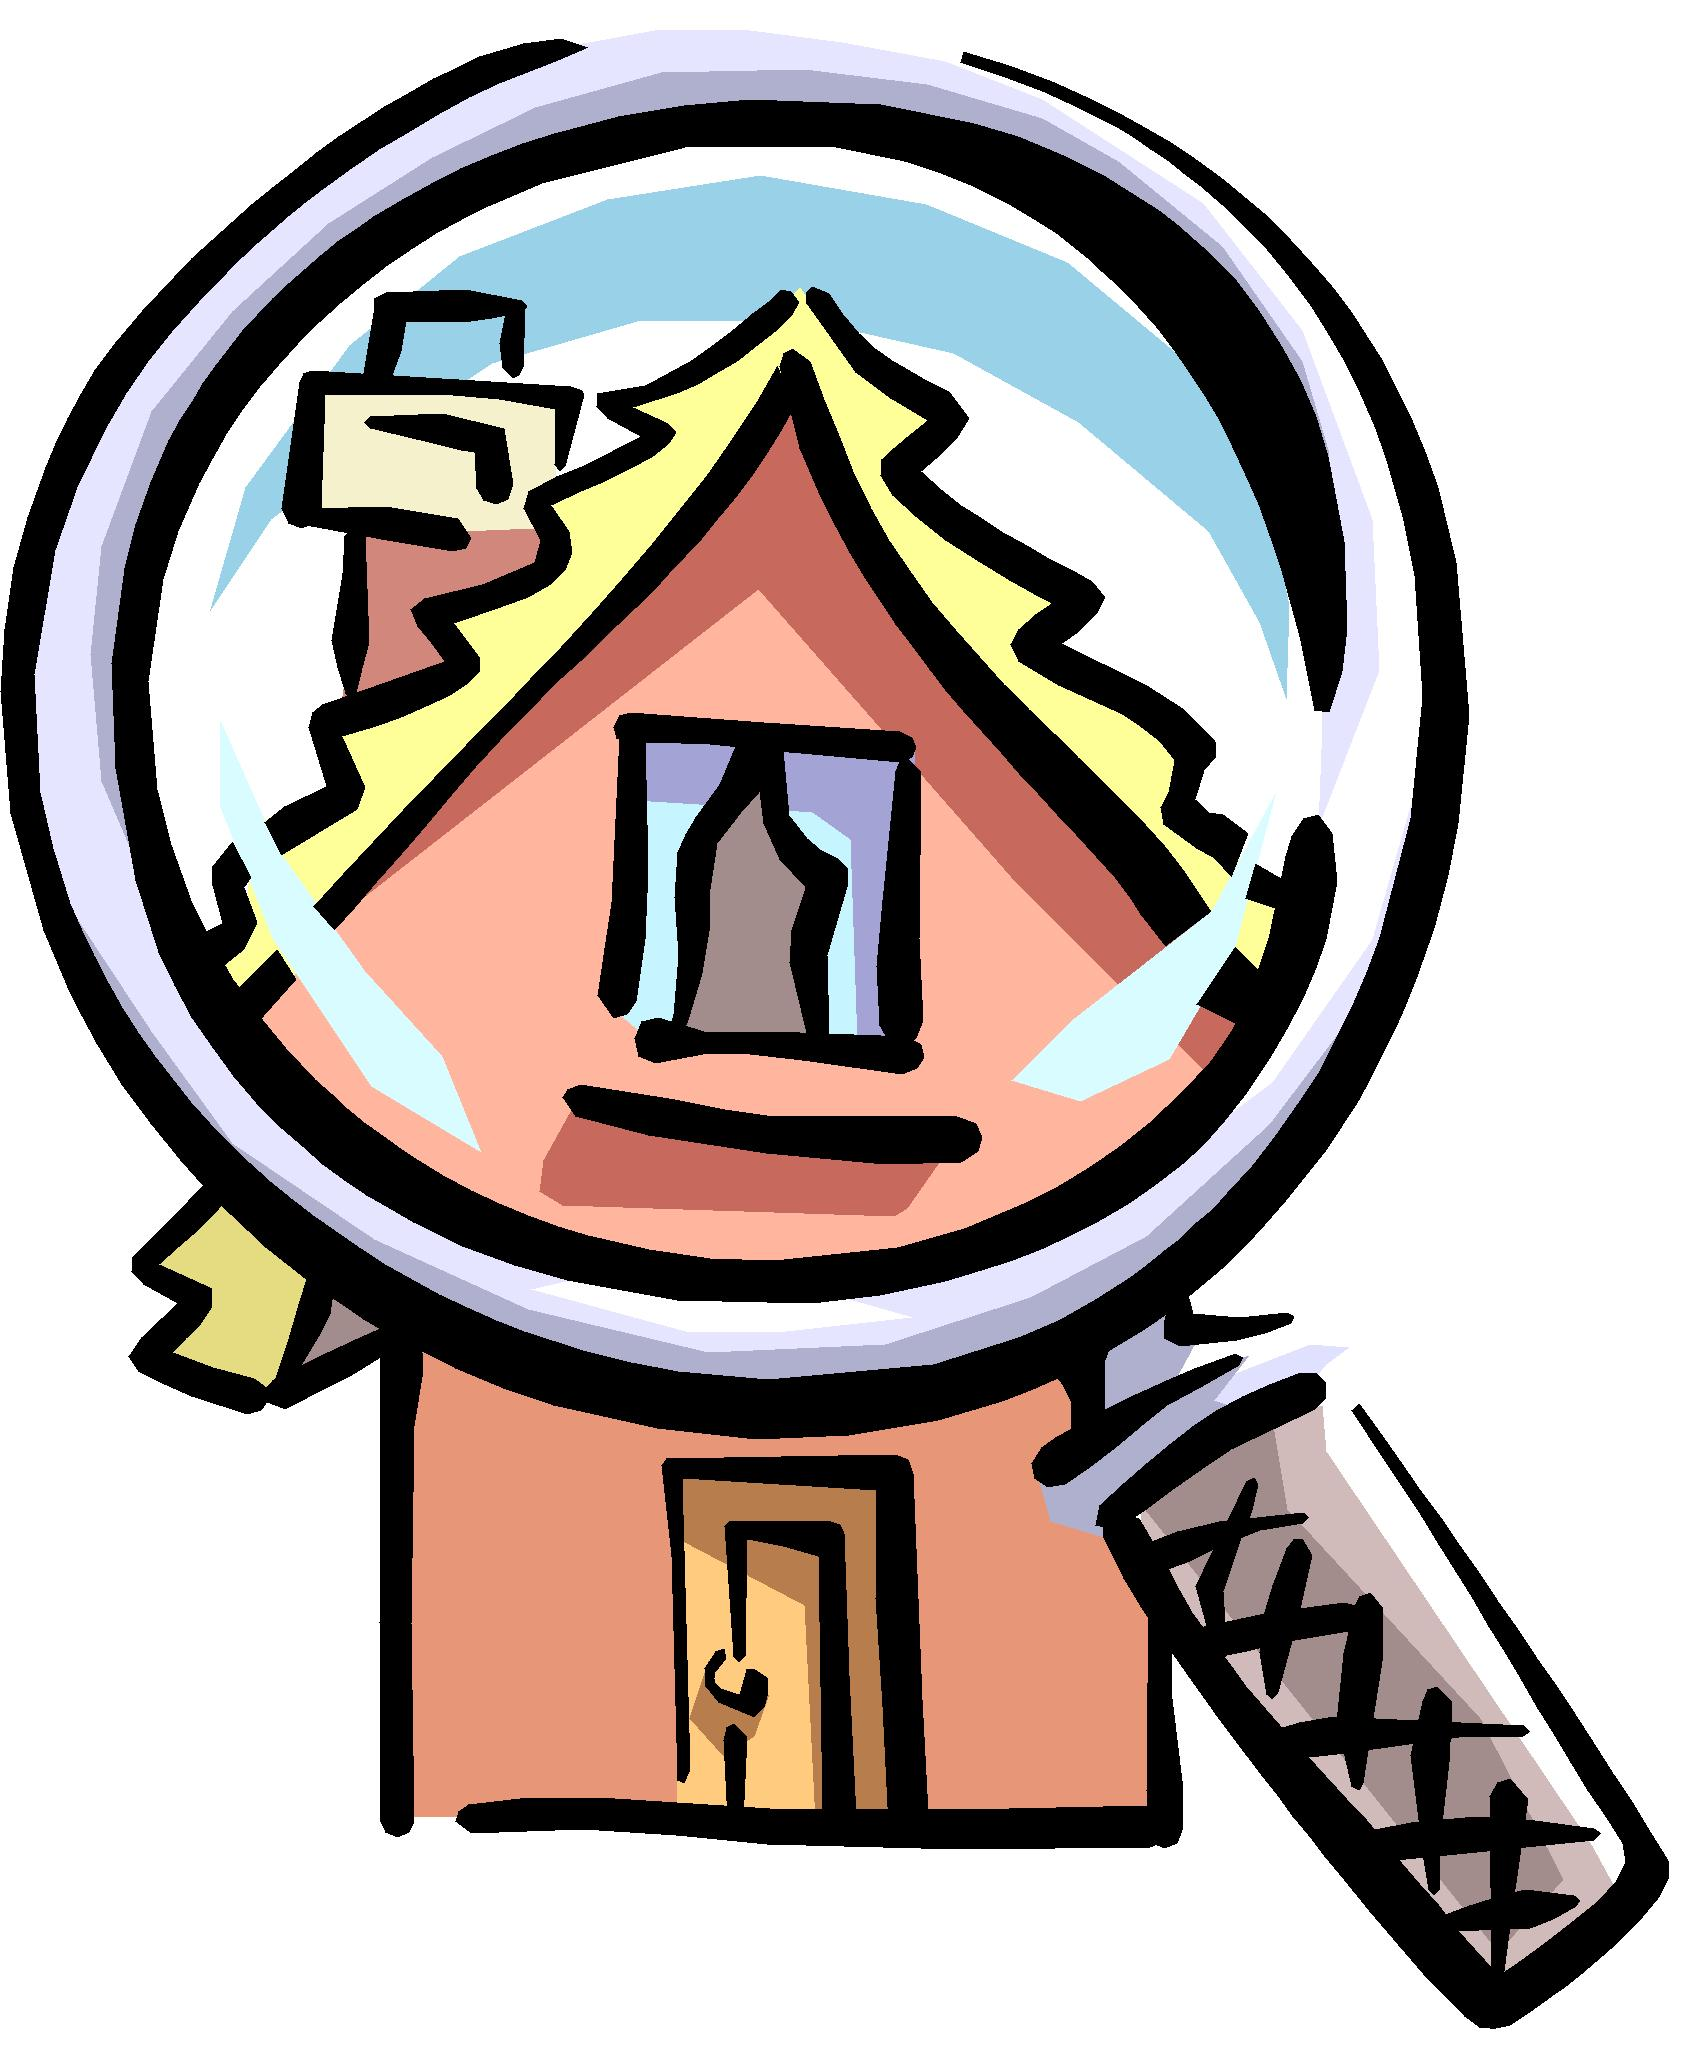 Home inspector clipart clipart Inspection Clipart   Free download best Inspection Clipart on ... clipart